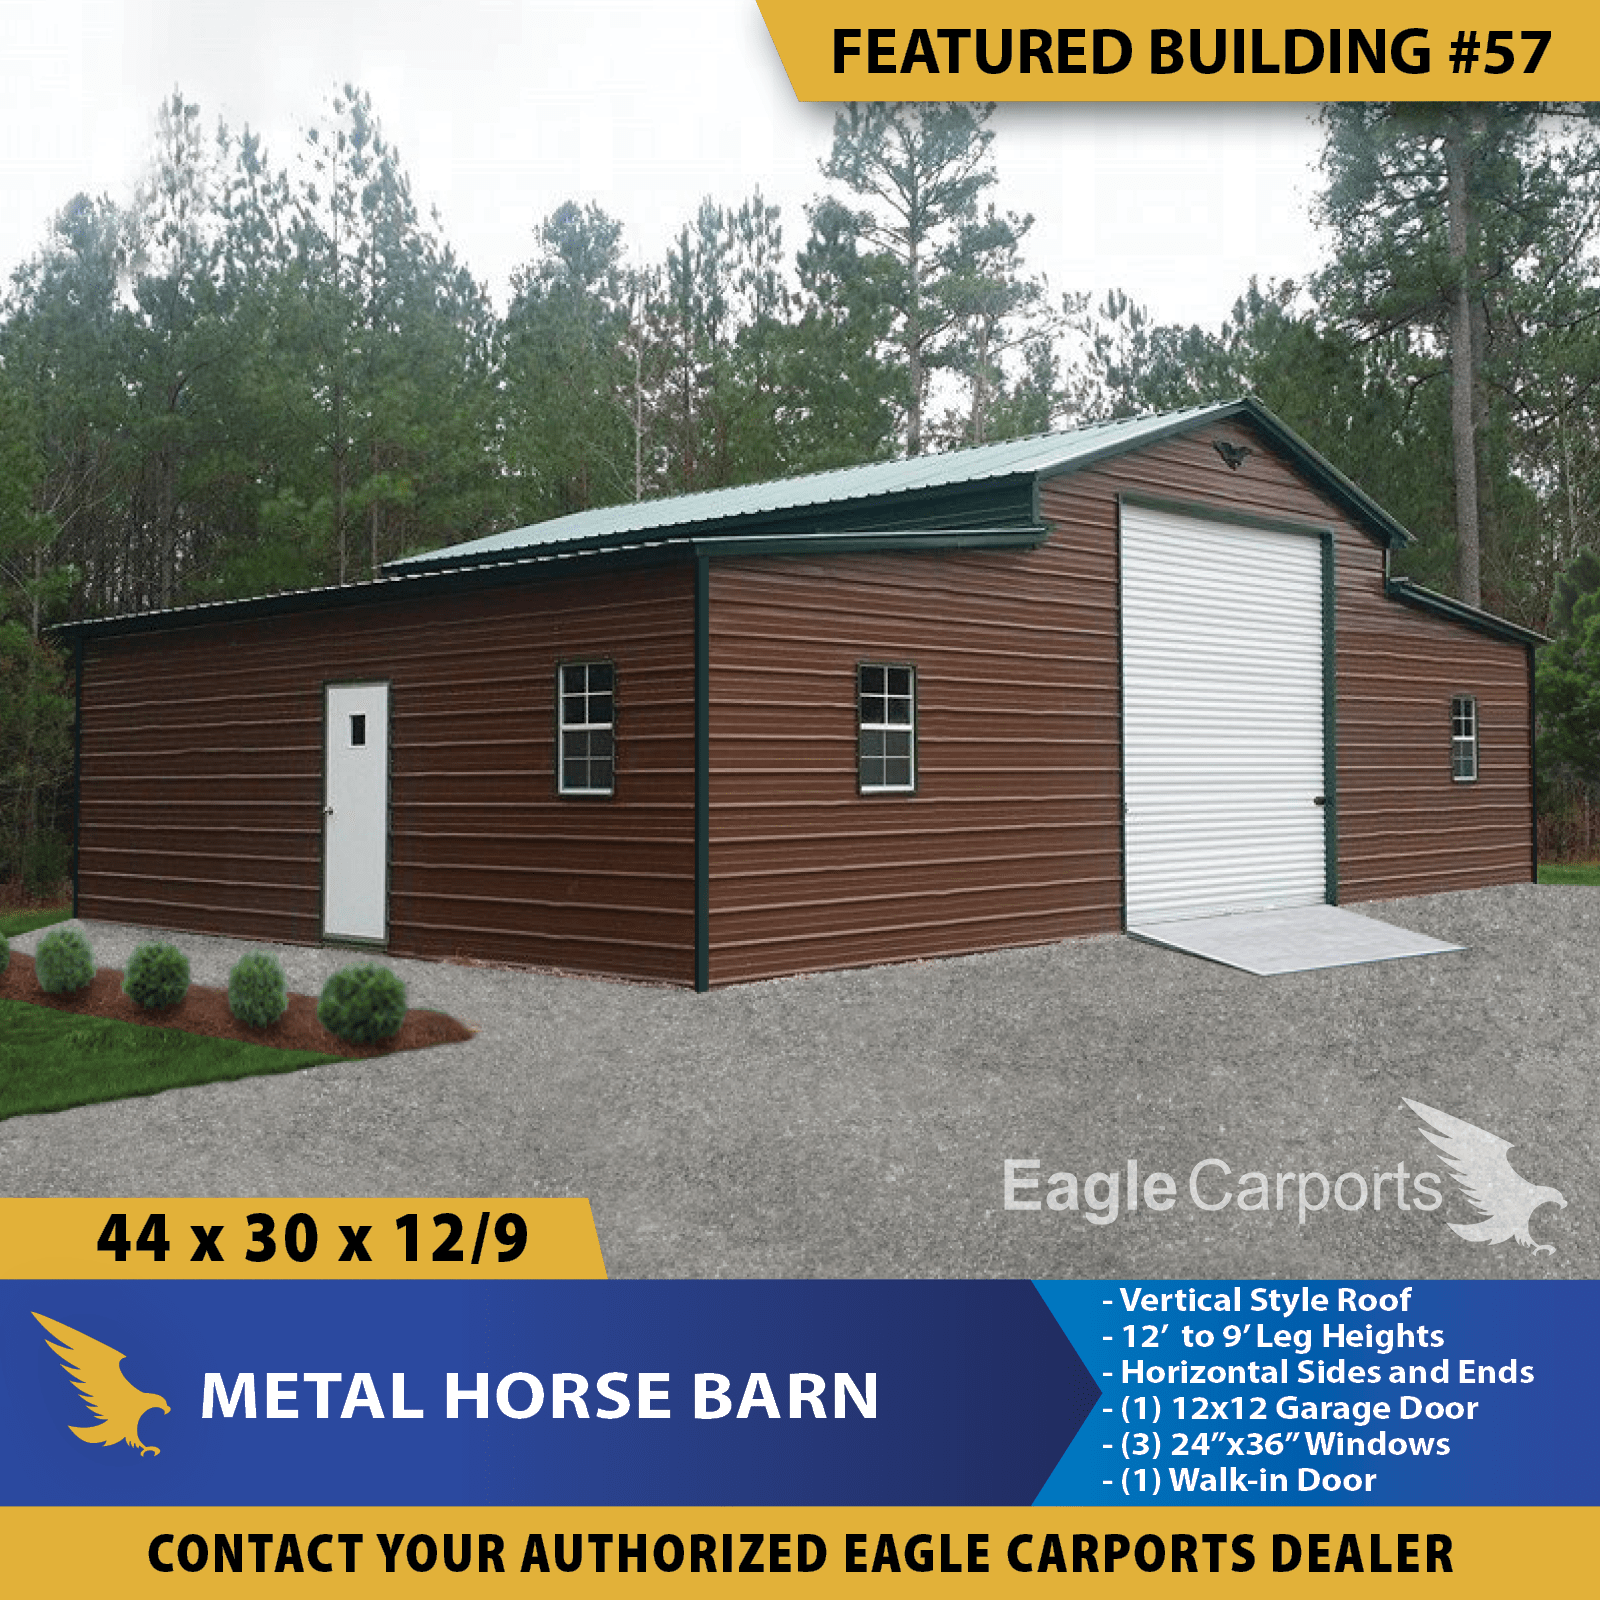 44x30x12 9 Metal Horse Barn Has A 12 Center Section Leg Height With 9 Side Leg Height 1 12x12 Garage Door In 2020 Portable Buildings Metal Horse Barns Building